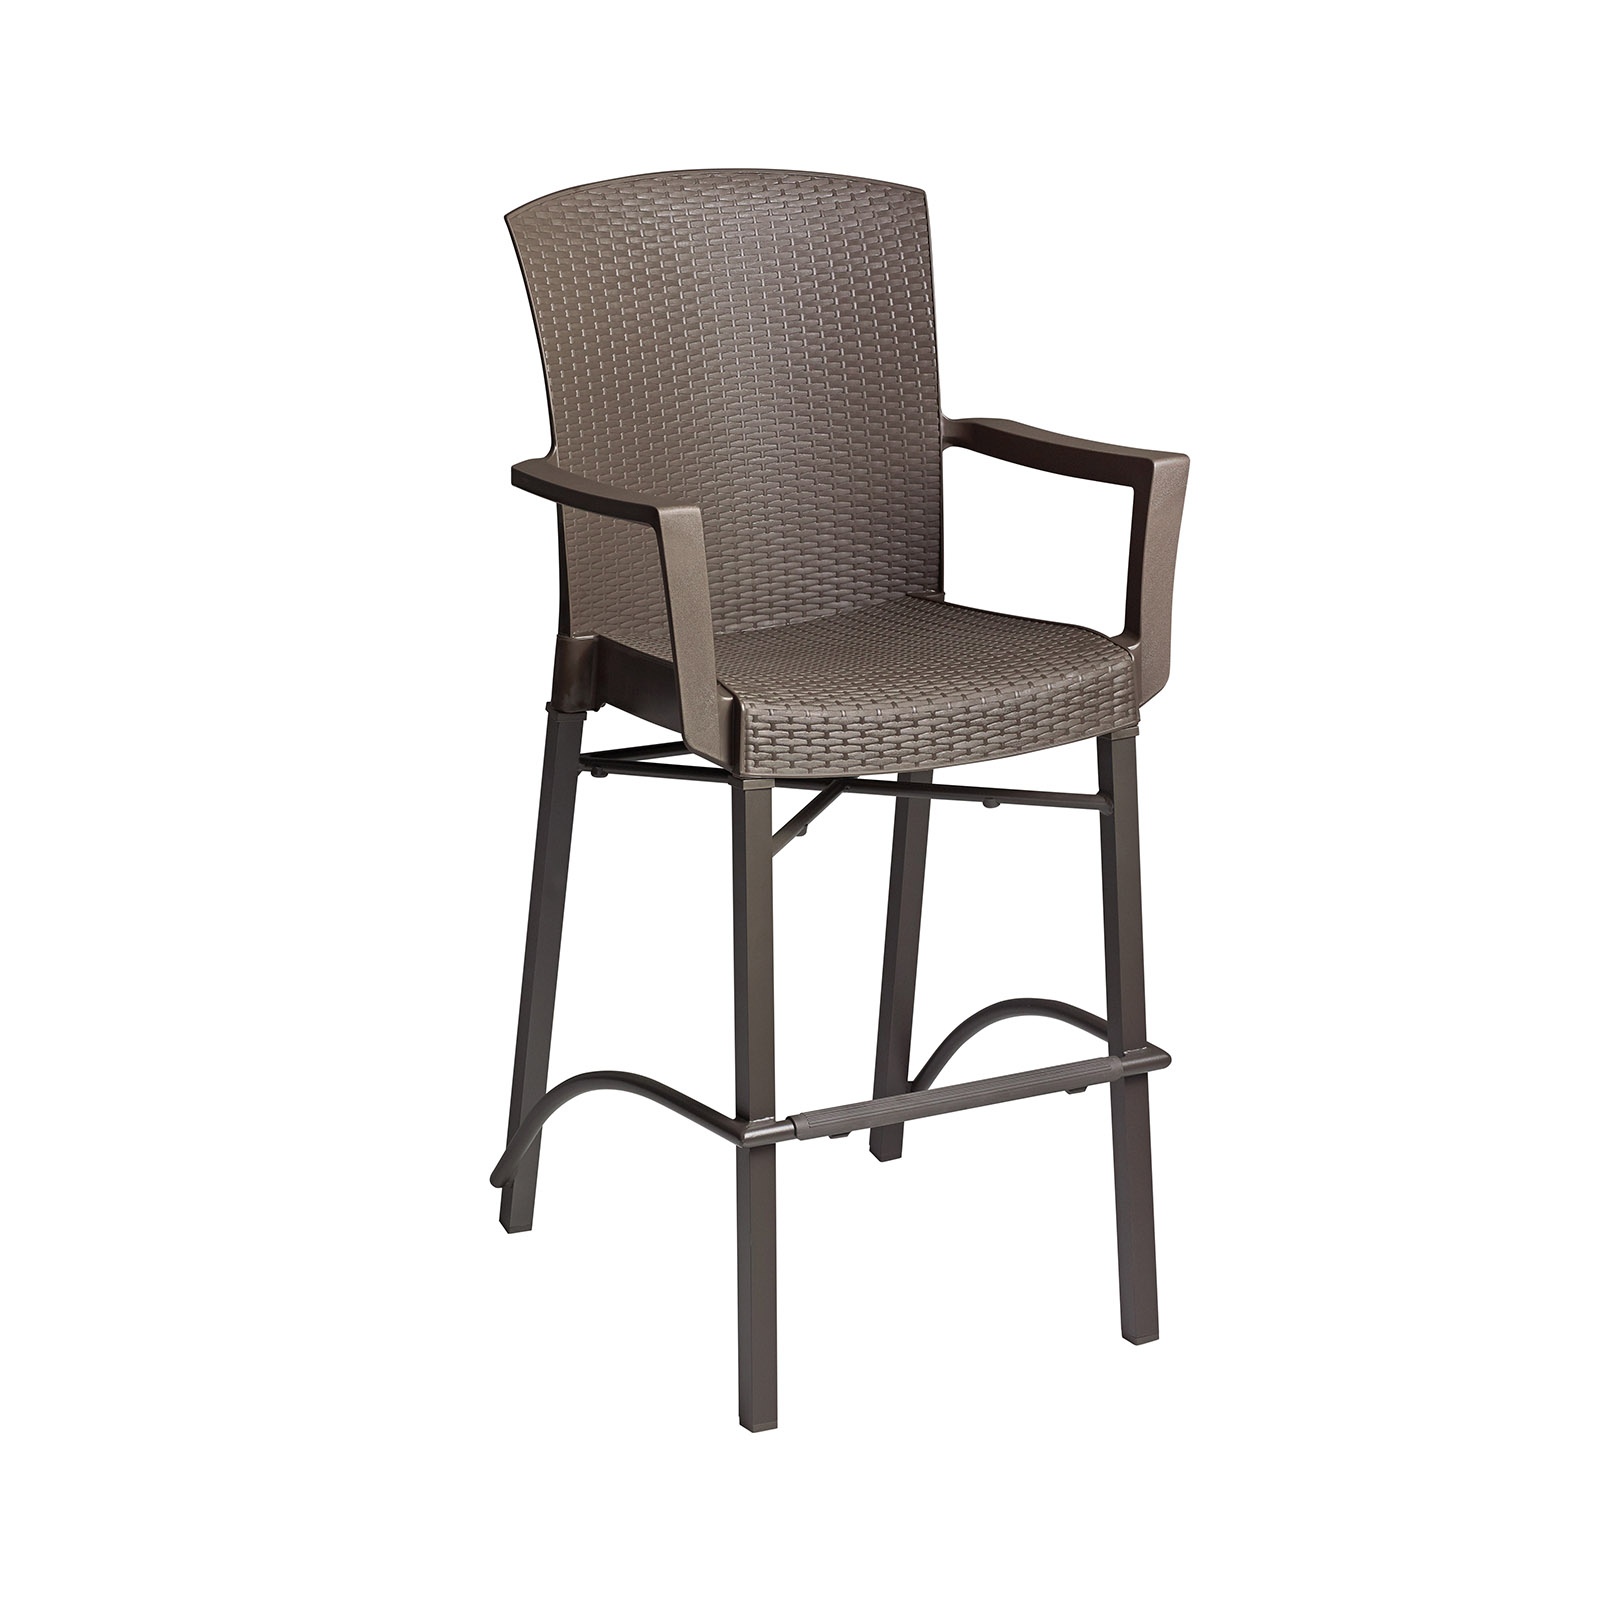 Grosfillex 48260037 bar stool, outdoor